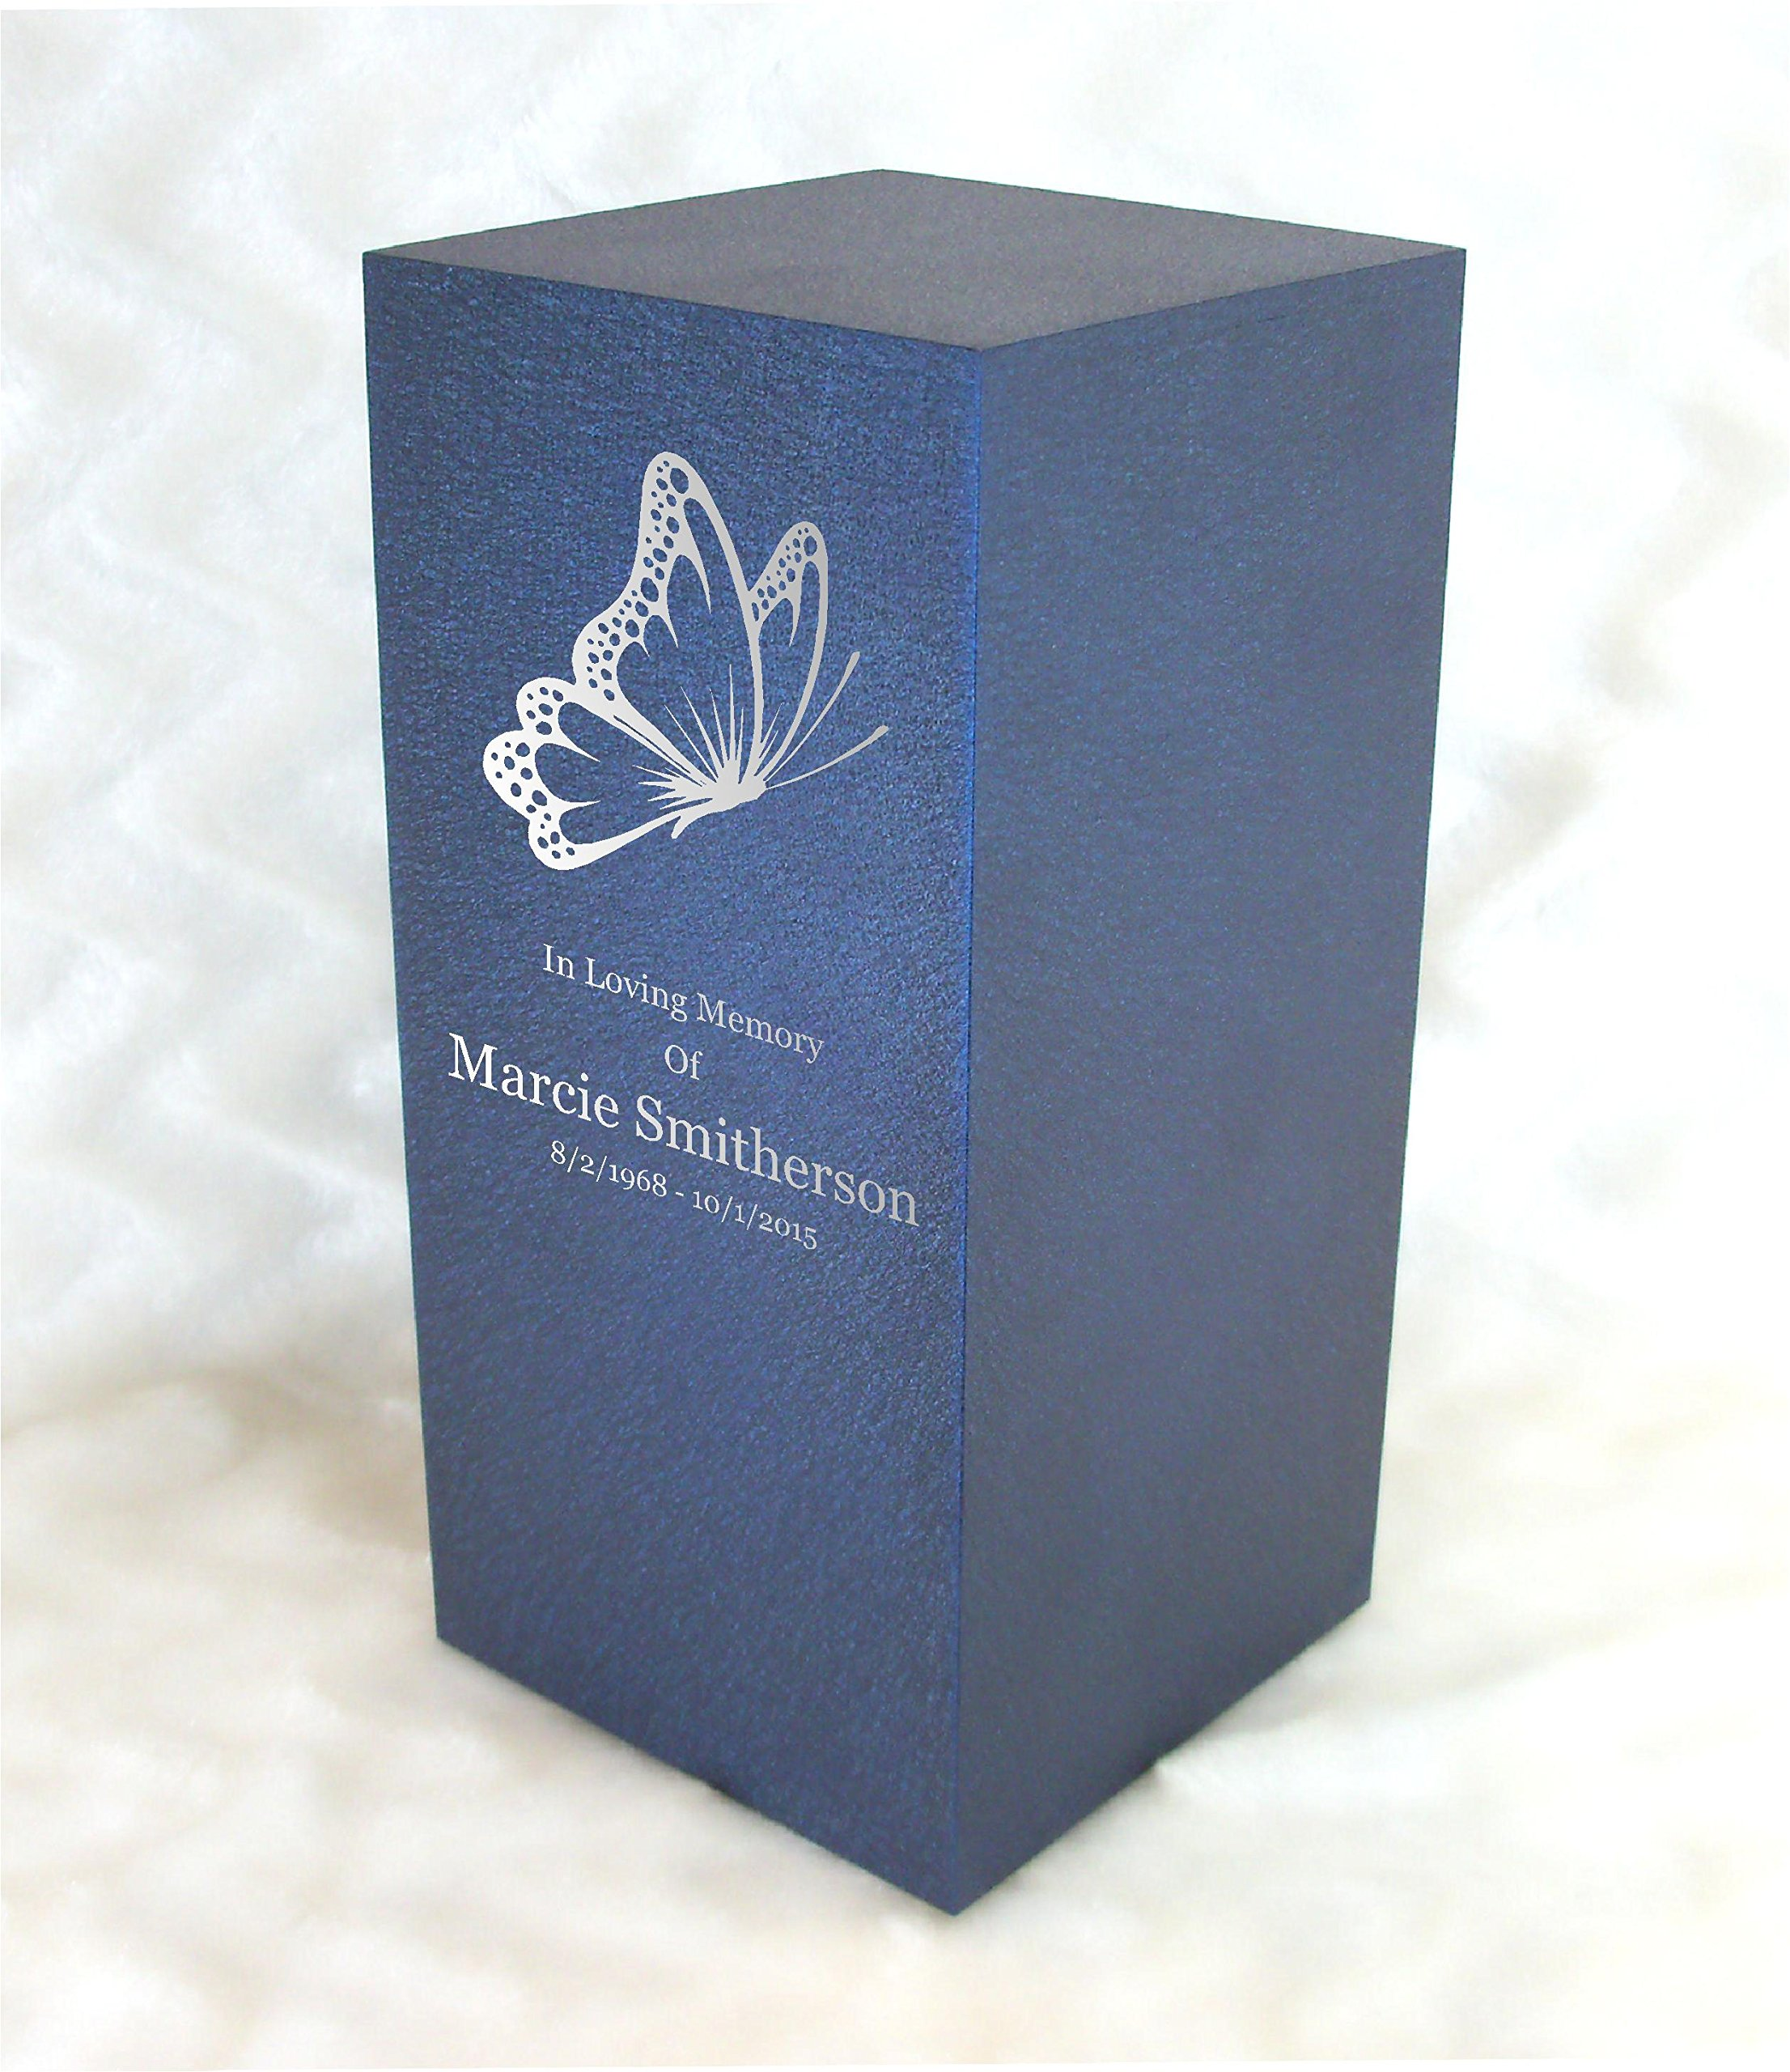 PERSONALIZED Engraved Butterfly Cremation Urn for Human Ashes - Made in America - Handcrafted in the USA by Amaranthine Urns, Adult Funeral Urn - Eaton DL (up to 200 lbs living weight) (Deep Sea Blue)